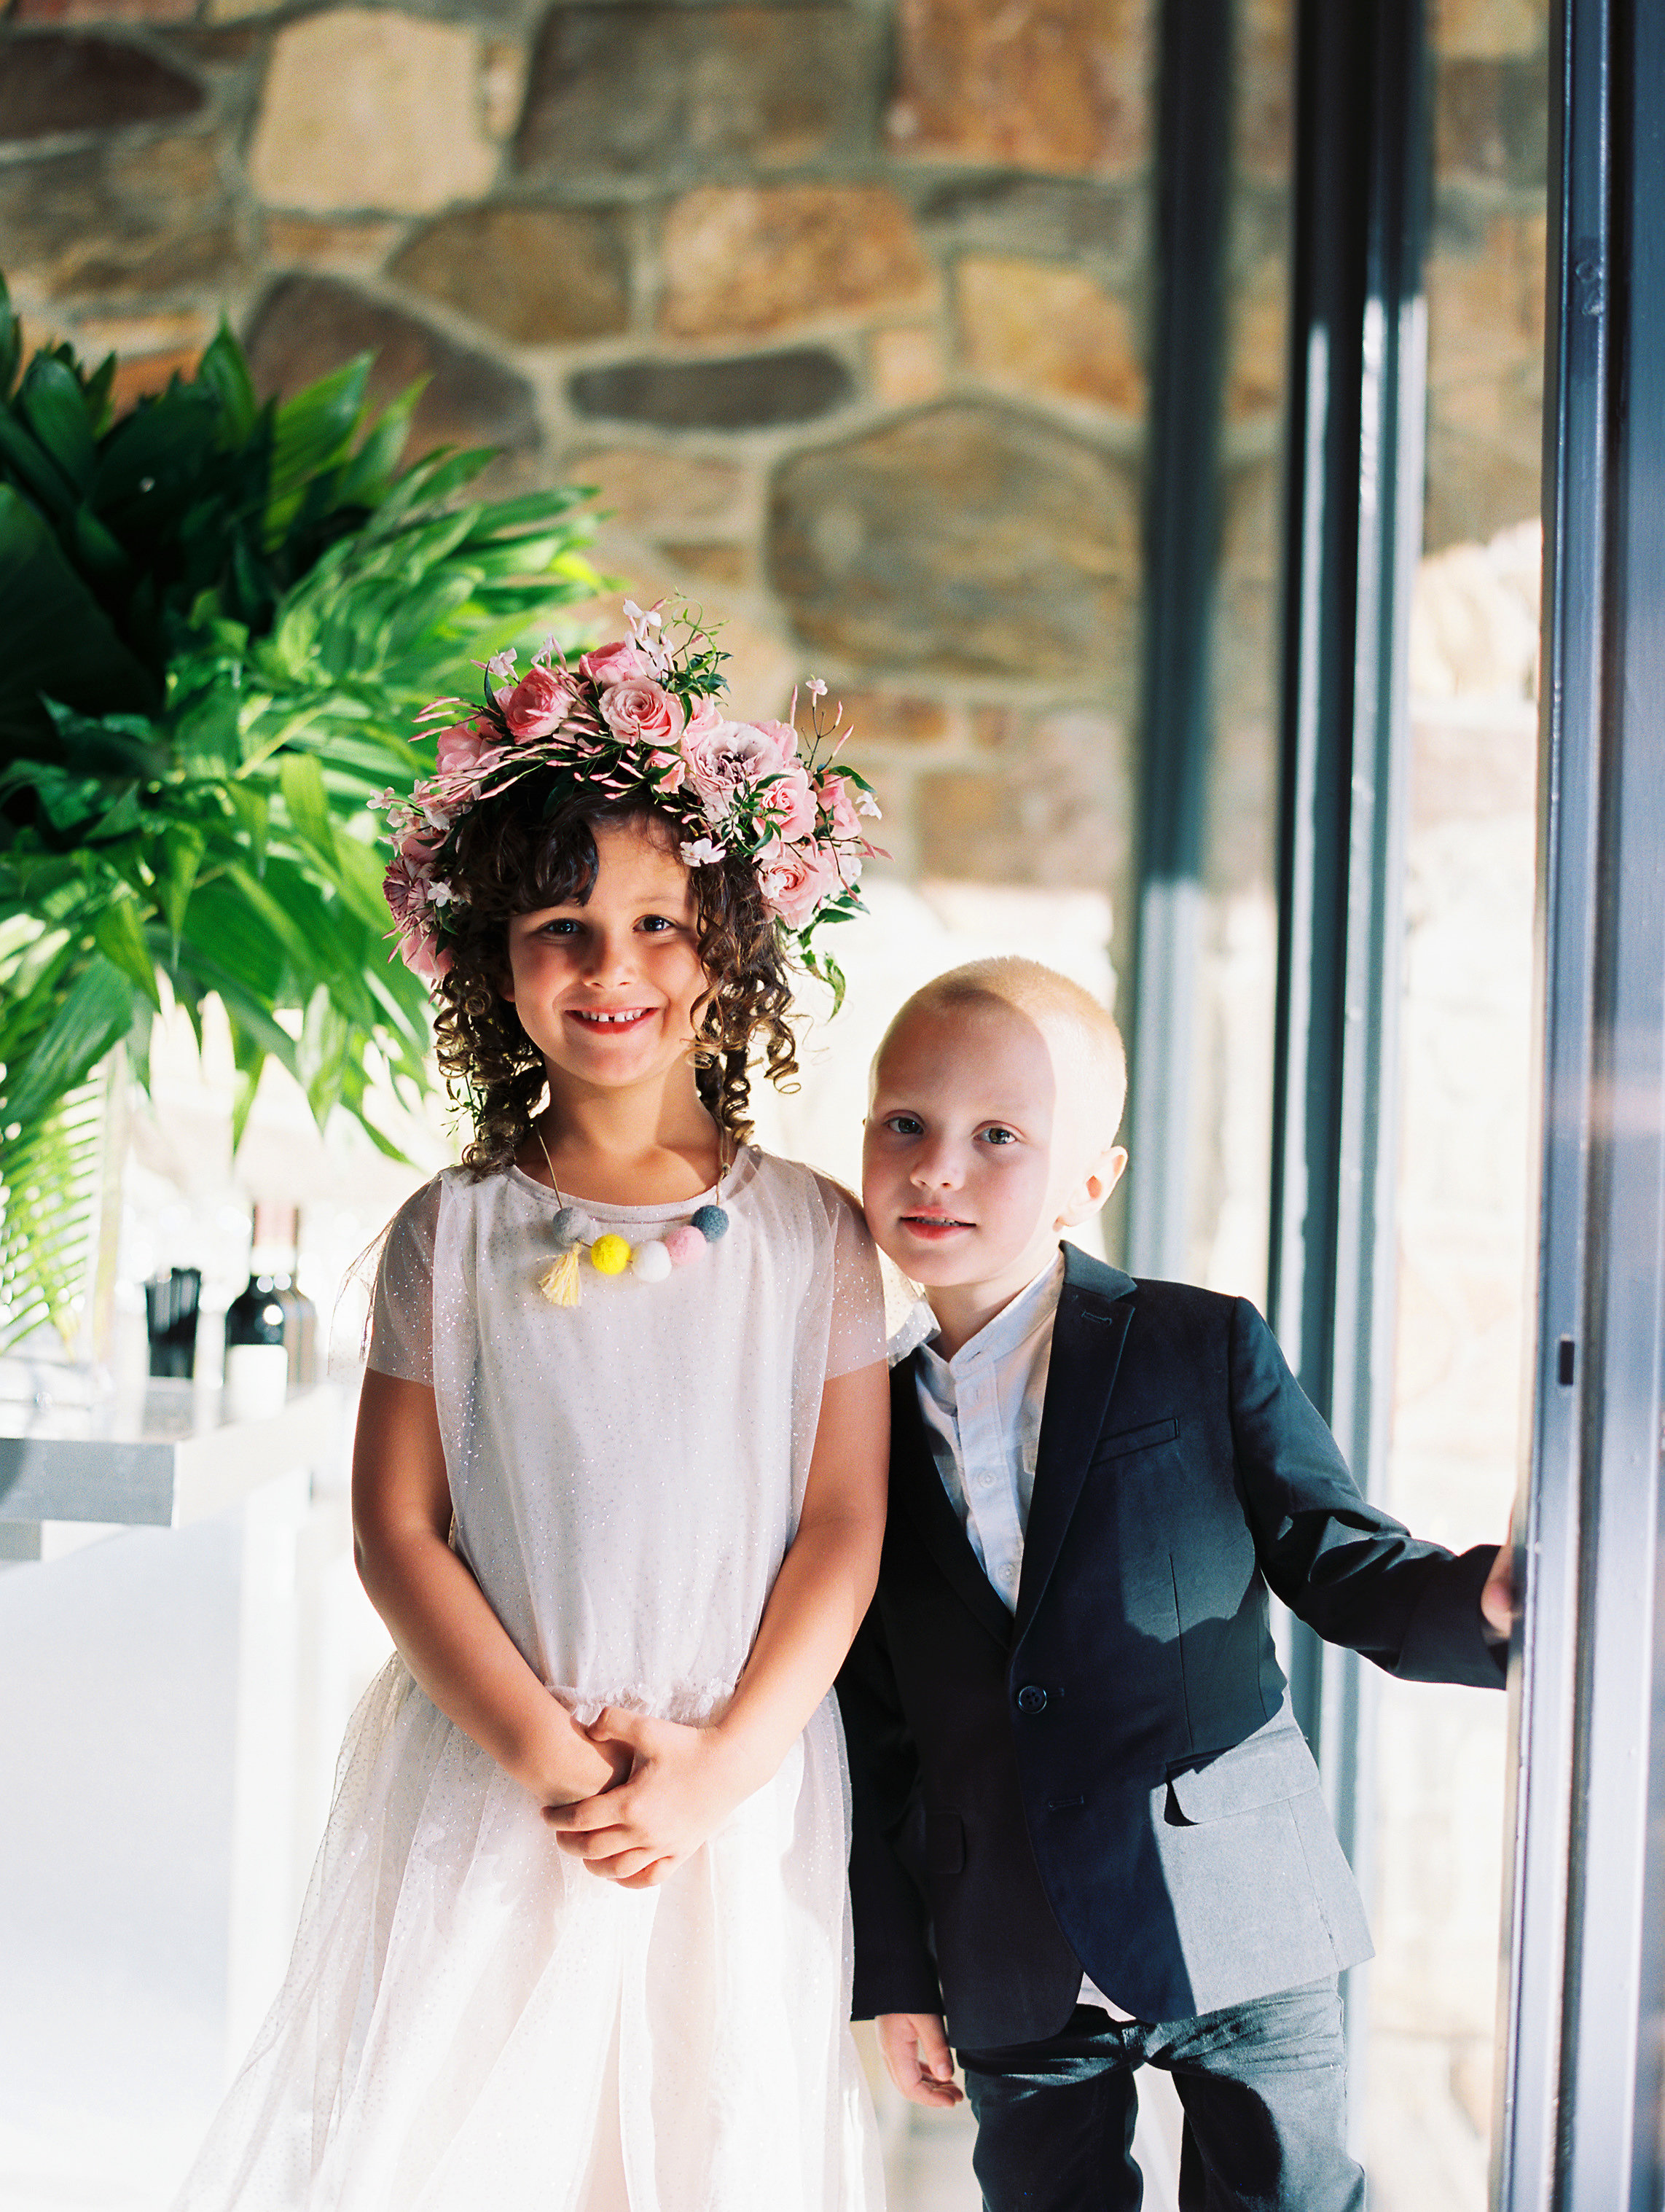 Do You Have to Invite the Flower Girl and Ring Bearer to Your Reception?